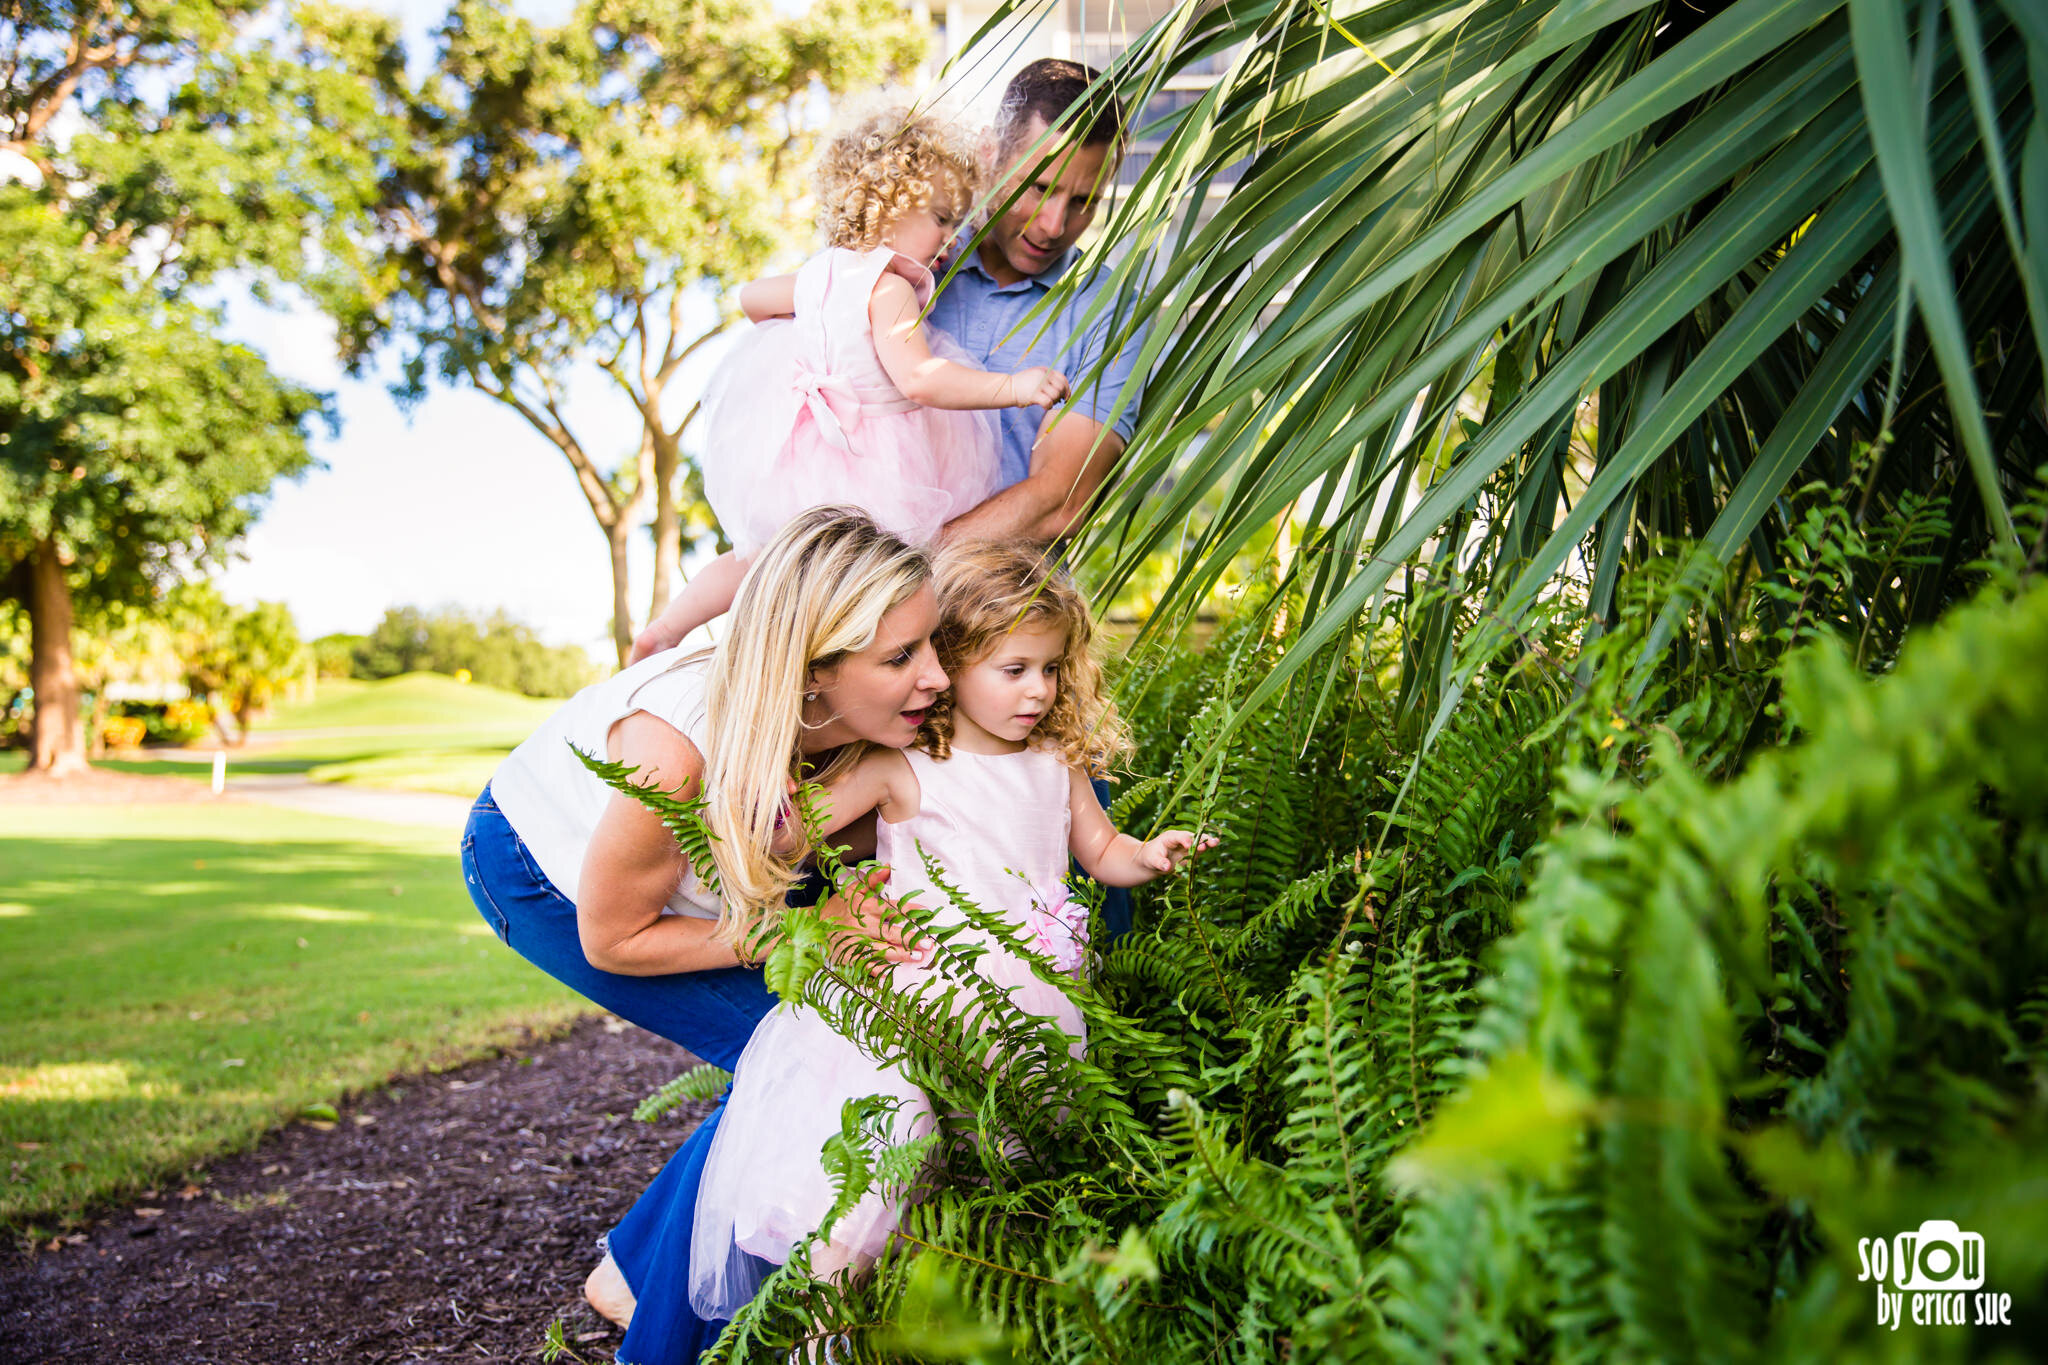 so-you-by-erica-sue-south-florida-extended-family-lifestyle-photo-session-2513.JPG